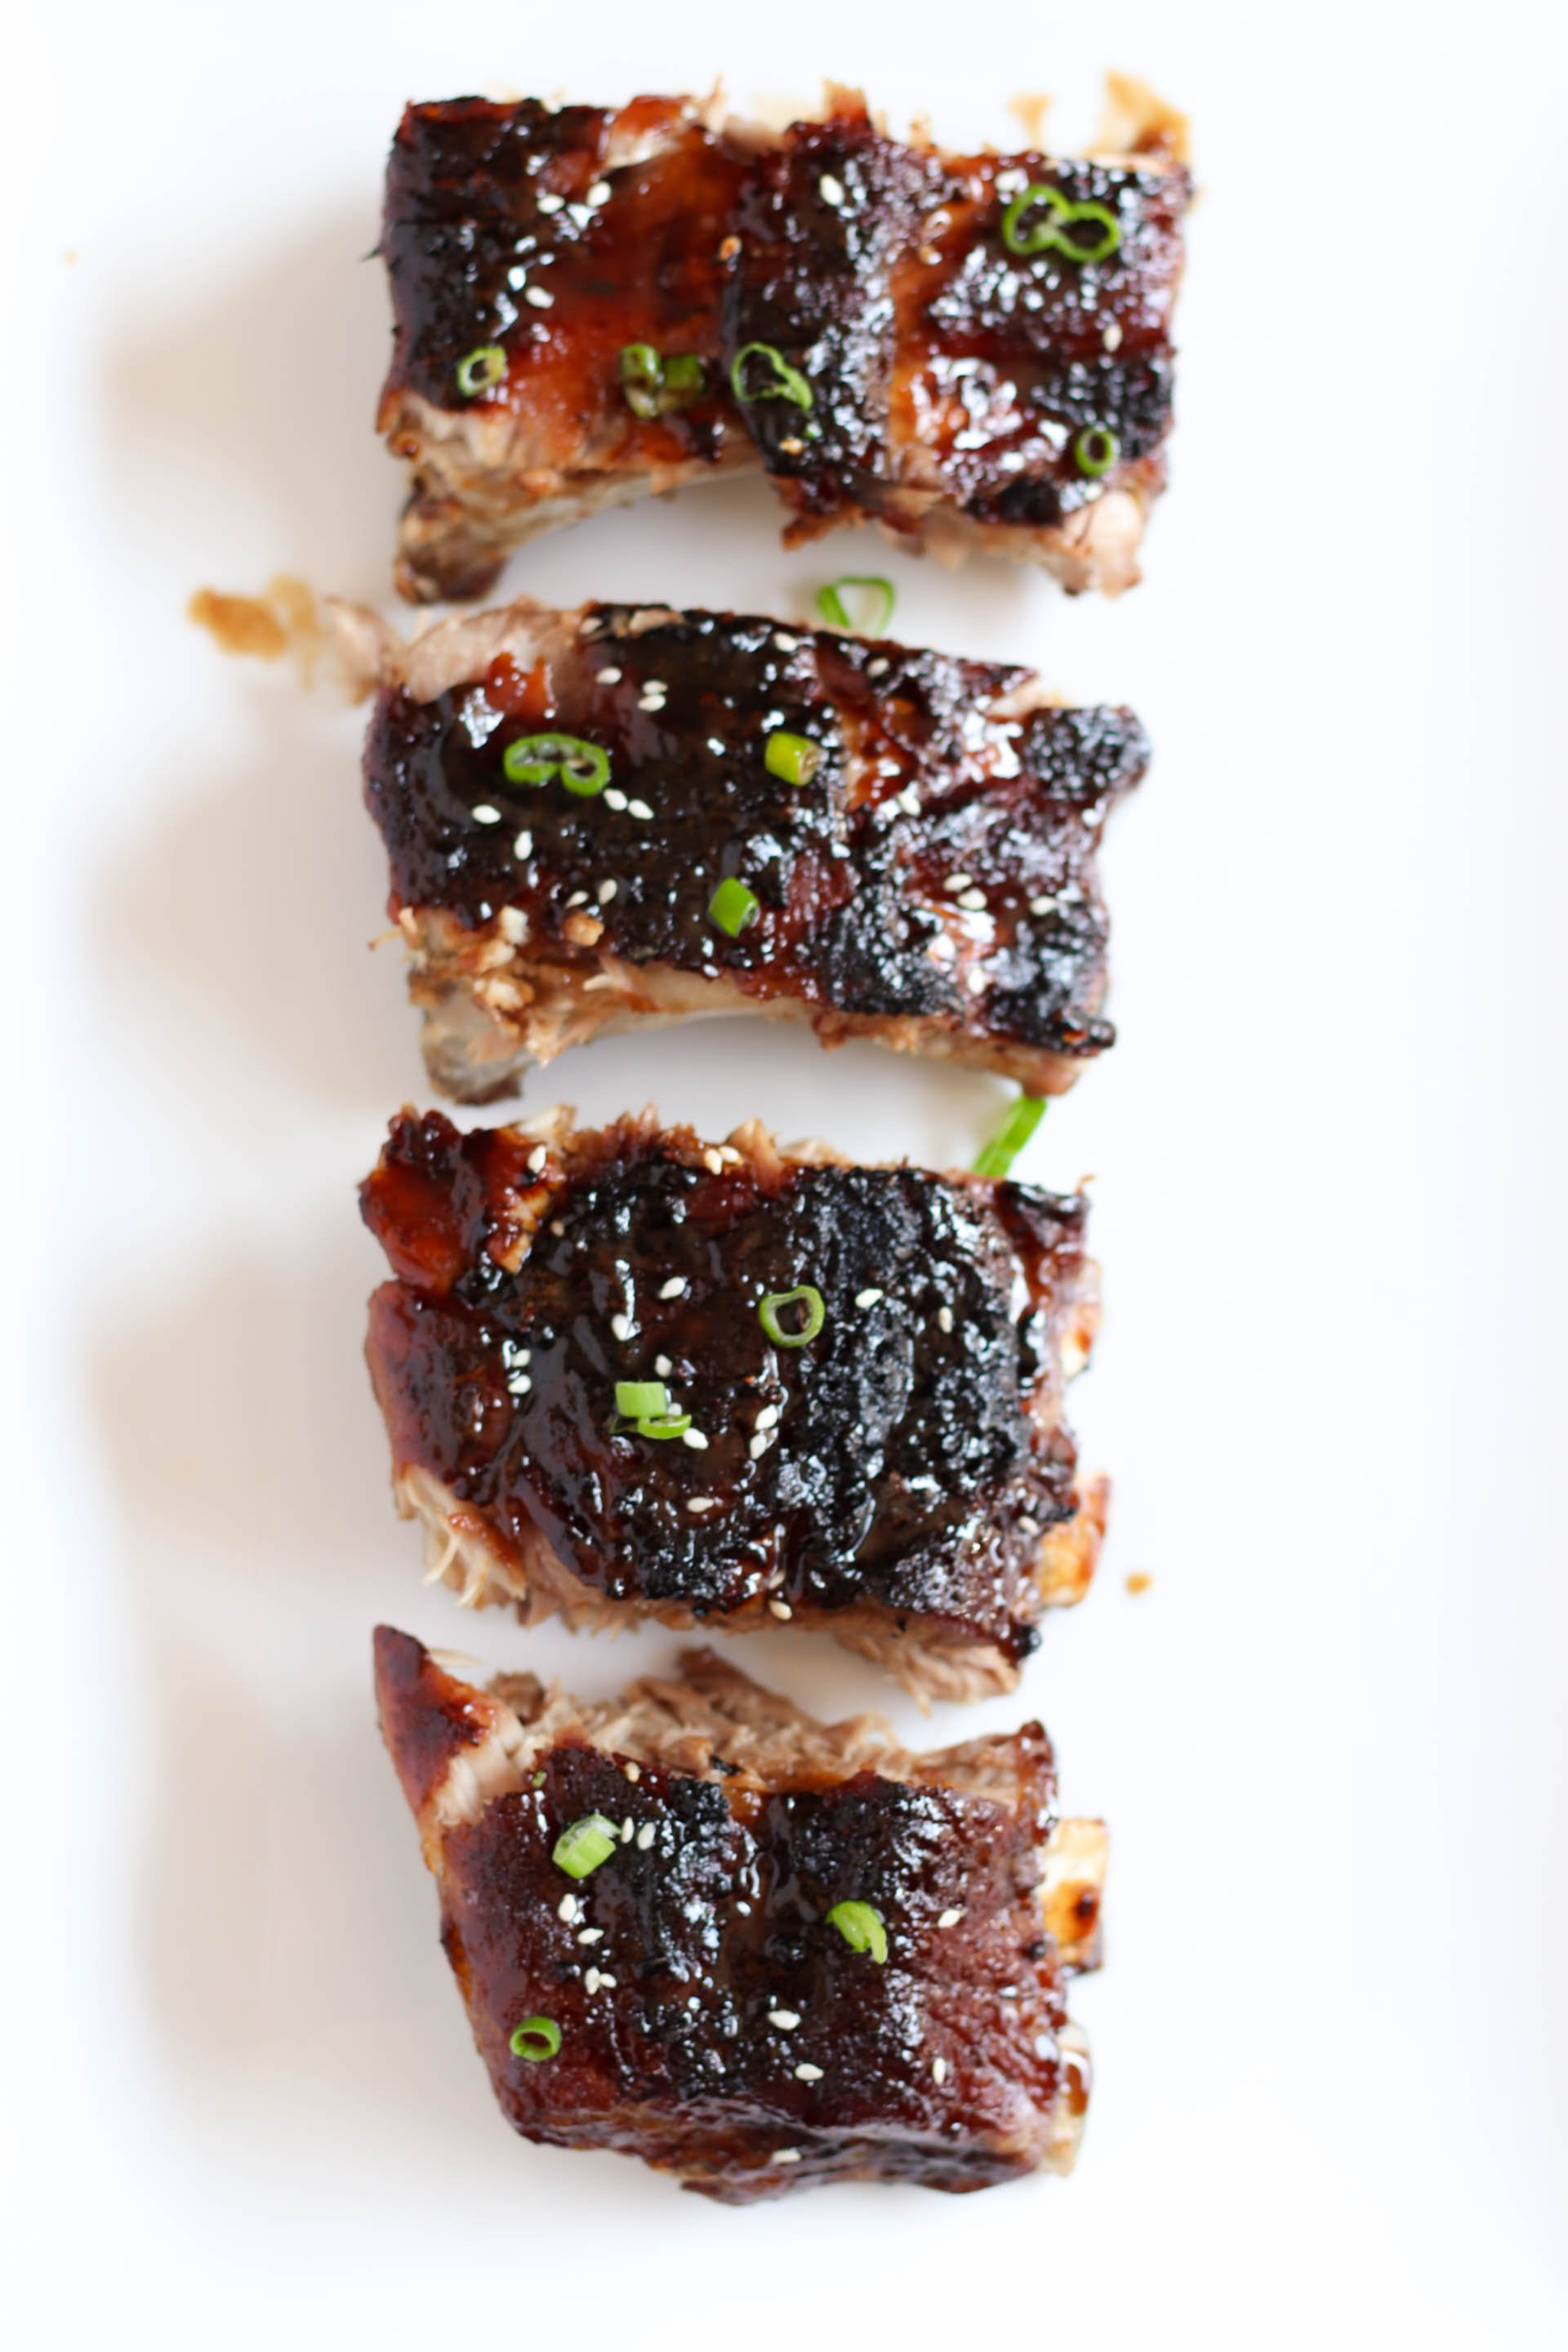 Sticky Asian Ribs sliced on a white plate